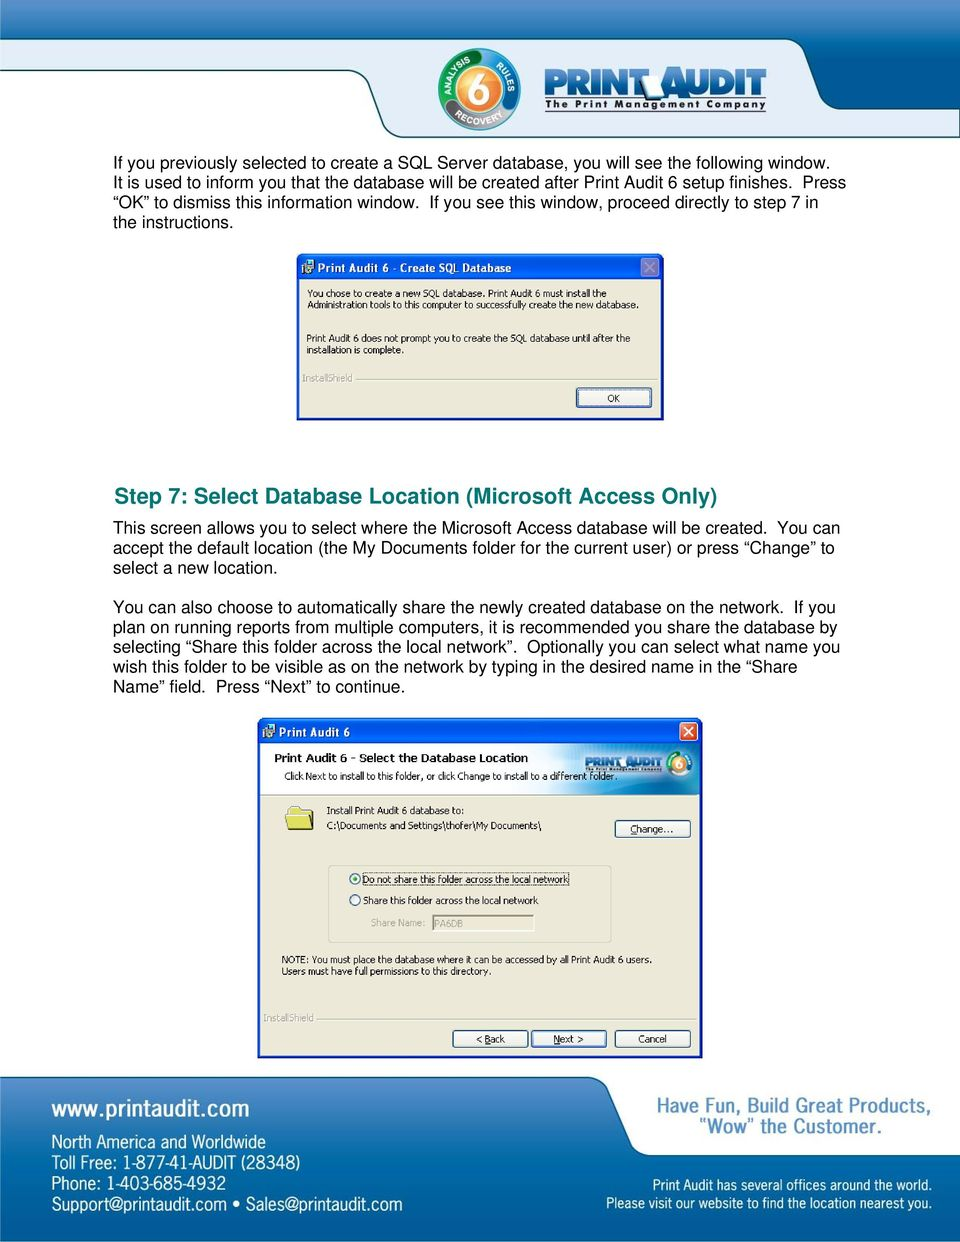 Step 7: Select Database Location (Microsoft Access Only) This screen allows you to select where the Microsoft Access database will be created.